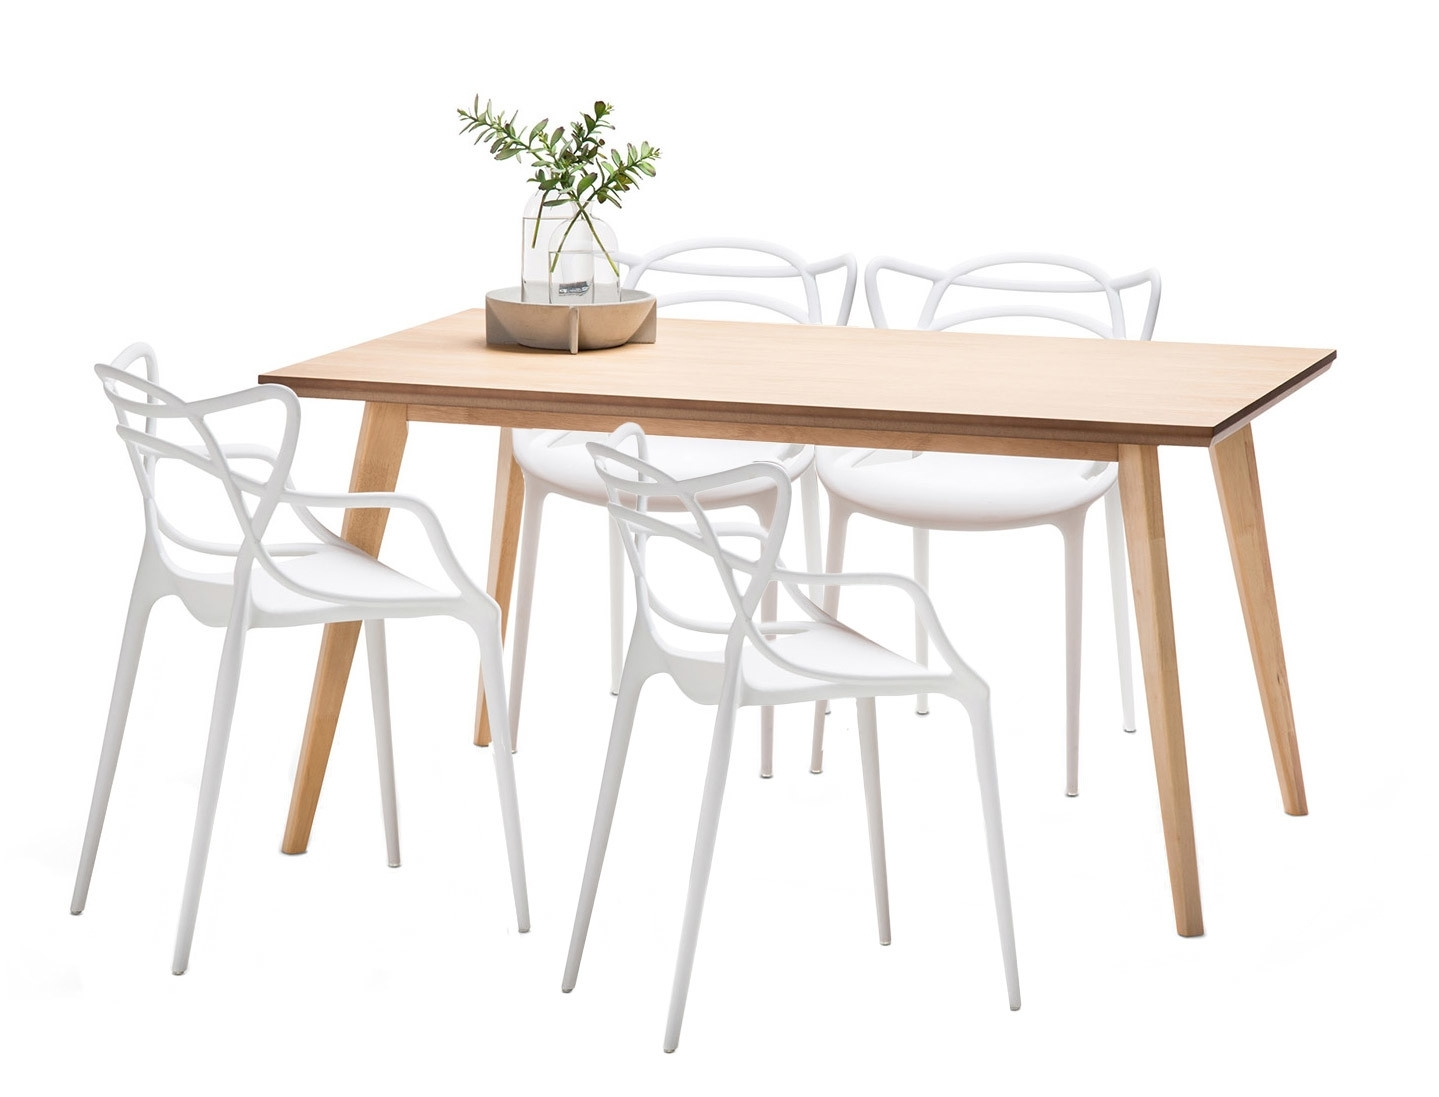 New Wyatt Dining Table Set With 4 Phillipe Starck Master Replica In Most Recently Released Wyatt Dining Tables (View 19 of 20)